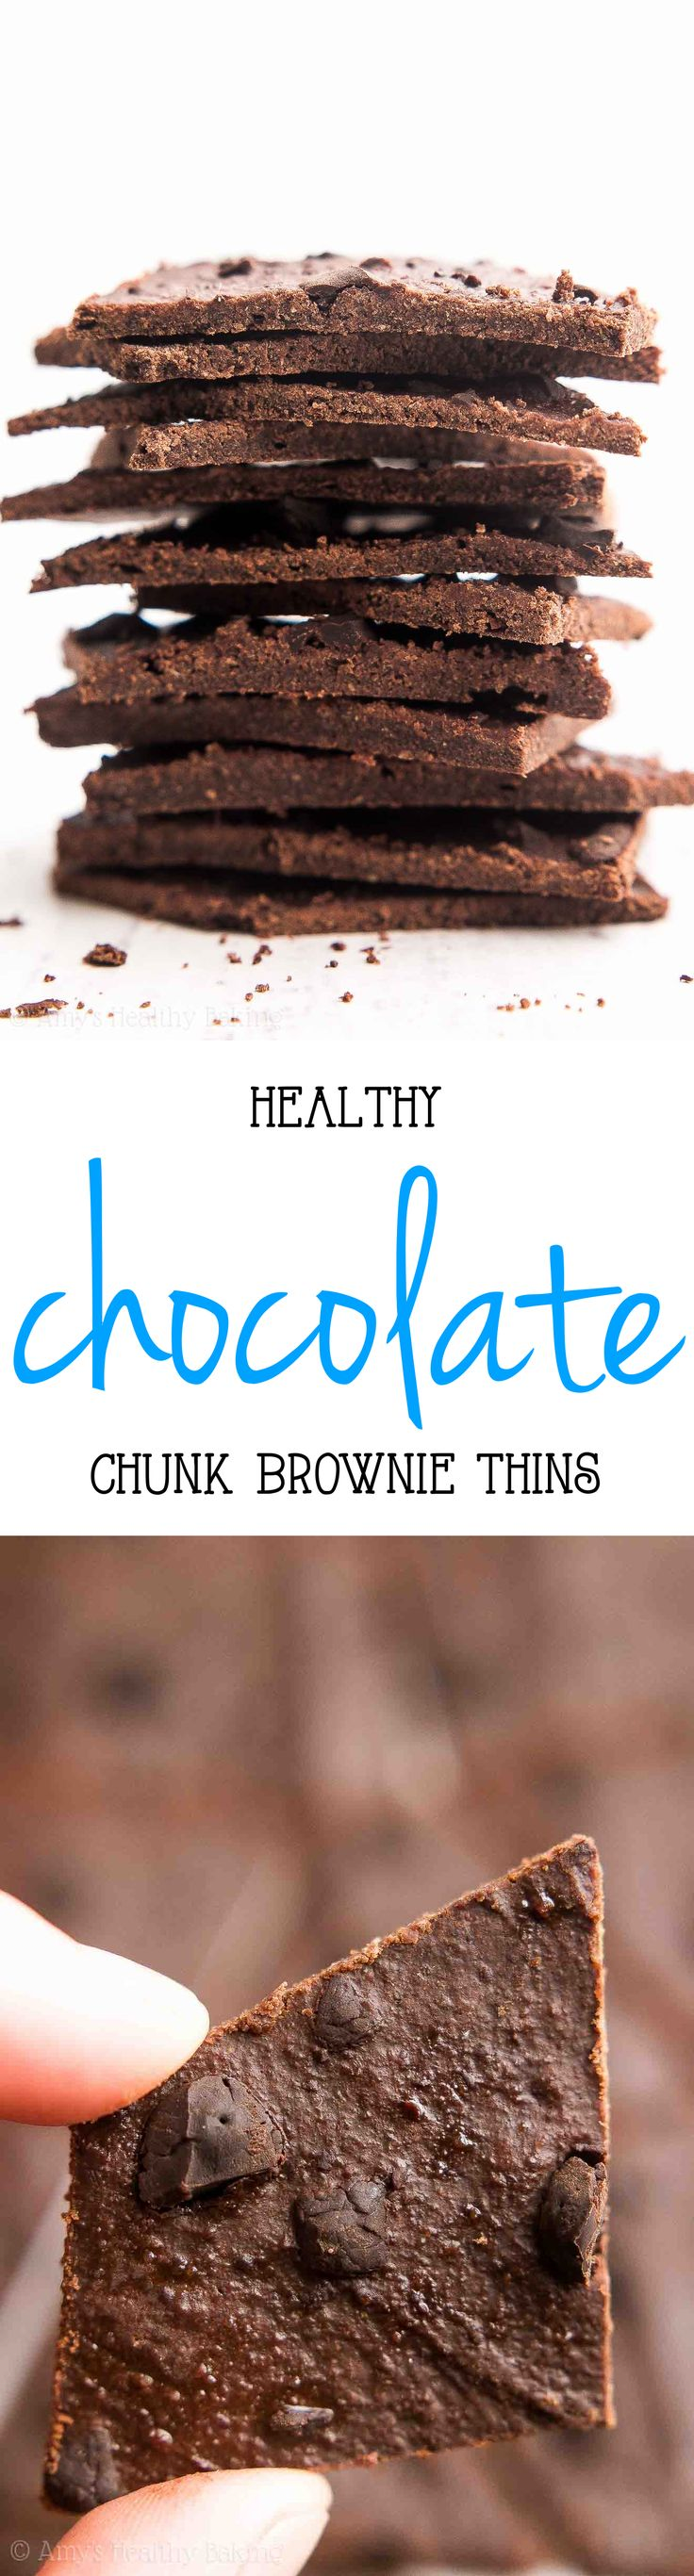 {HEALTHY!} Chocolate Chunk Brownie Thins = AMAZING! Rich, easy & just 66 calories! My favorite thing for sweet tooth cravings!